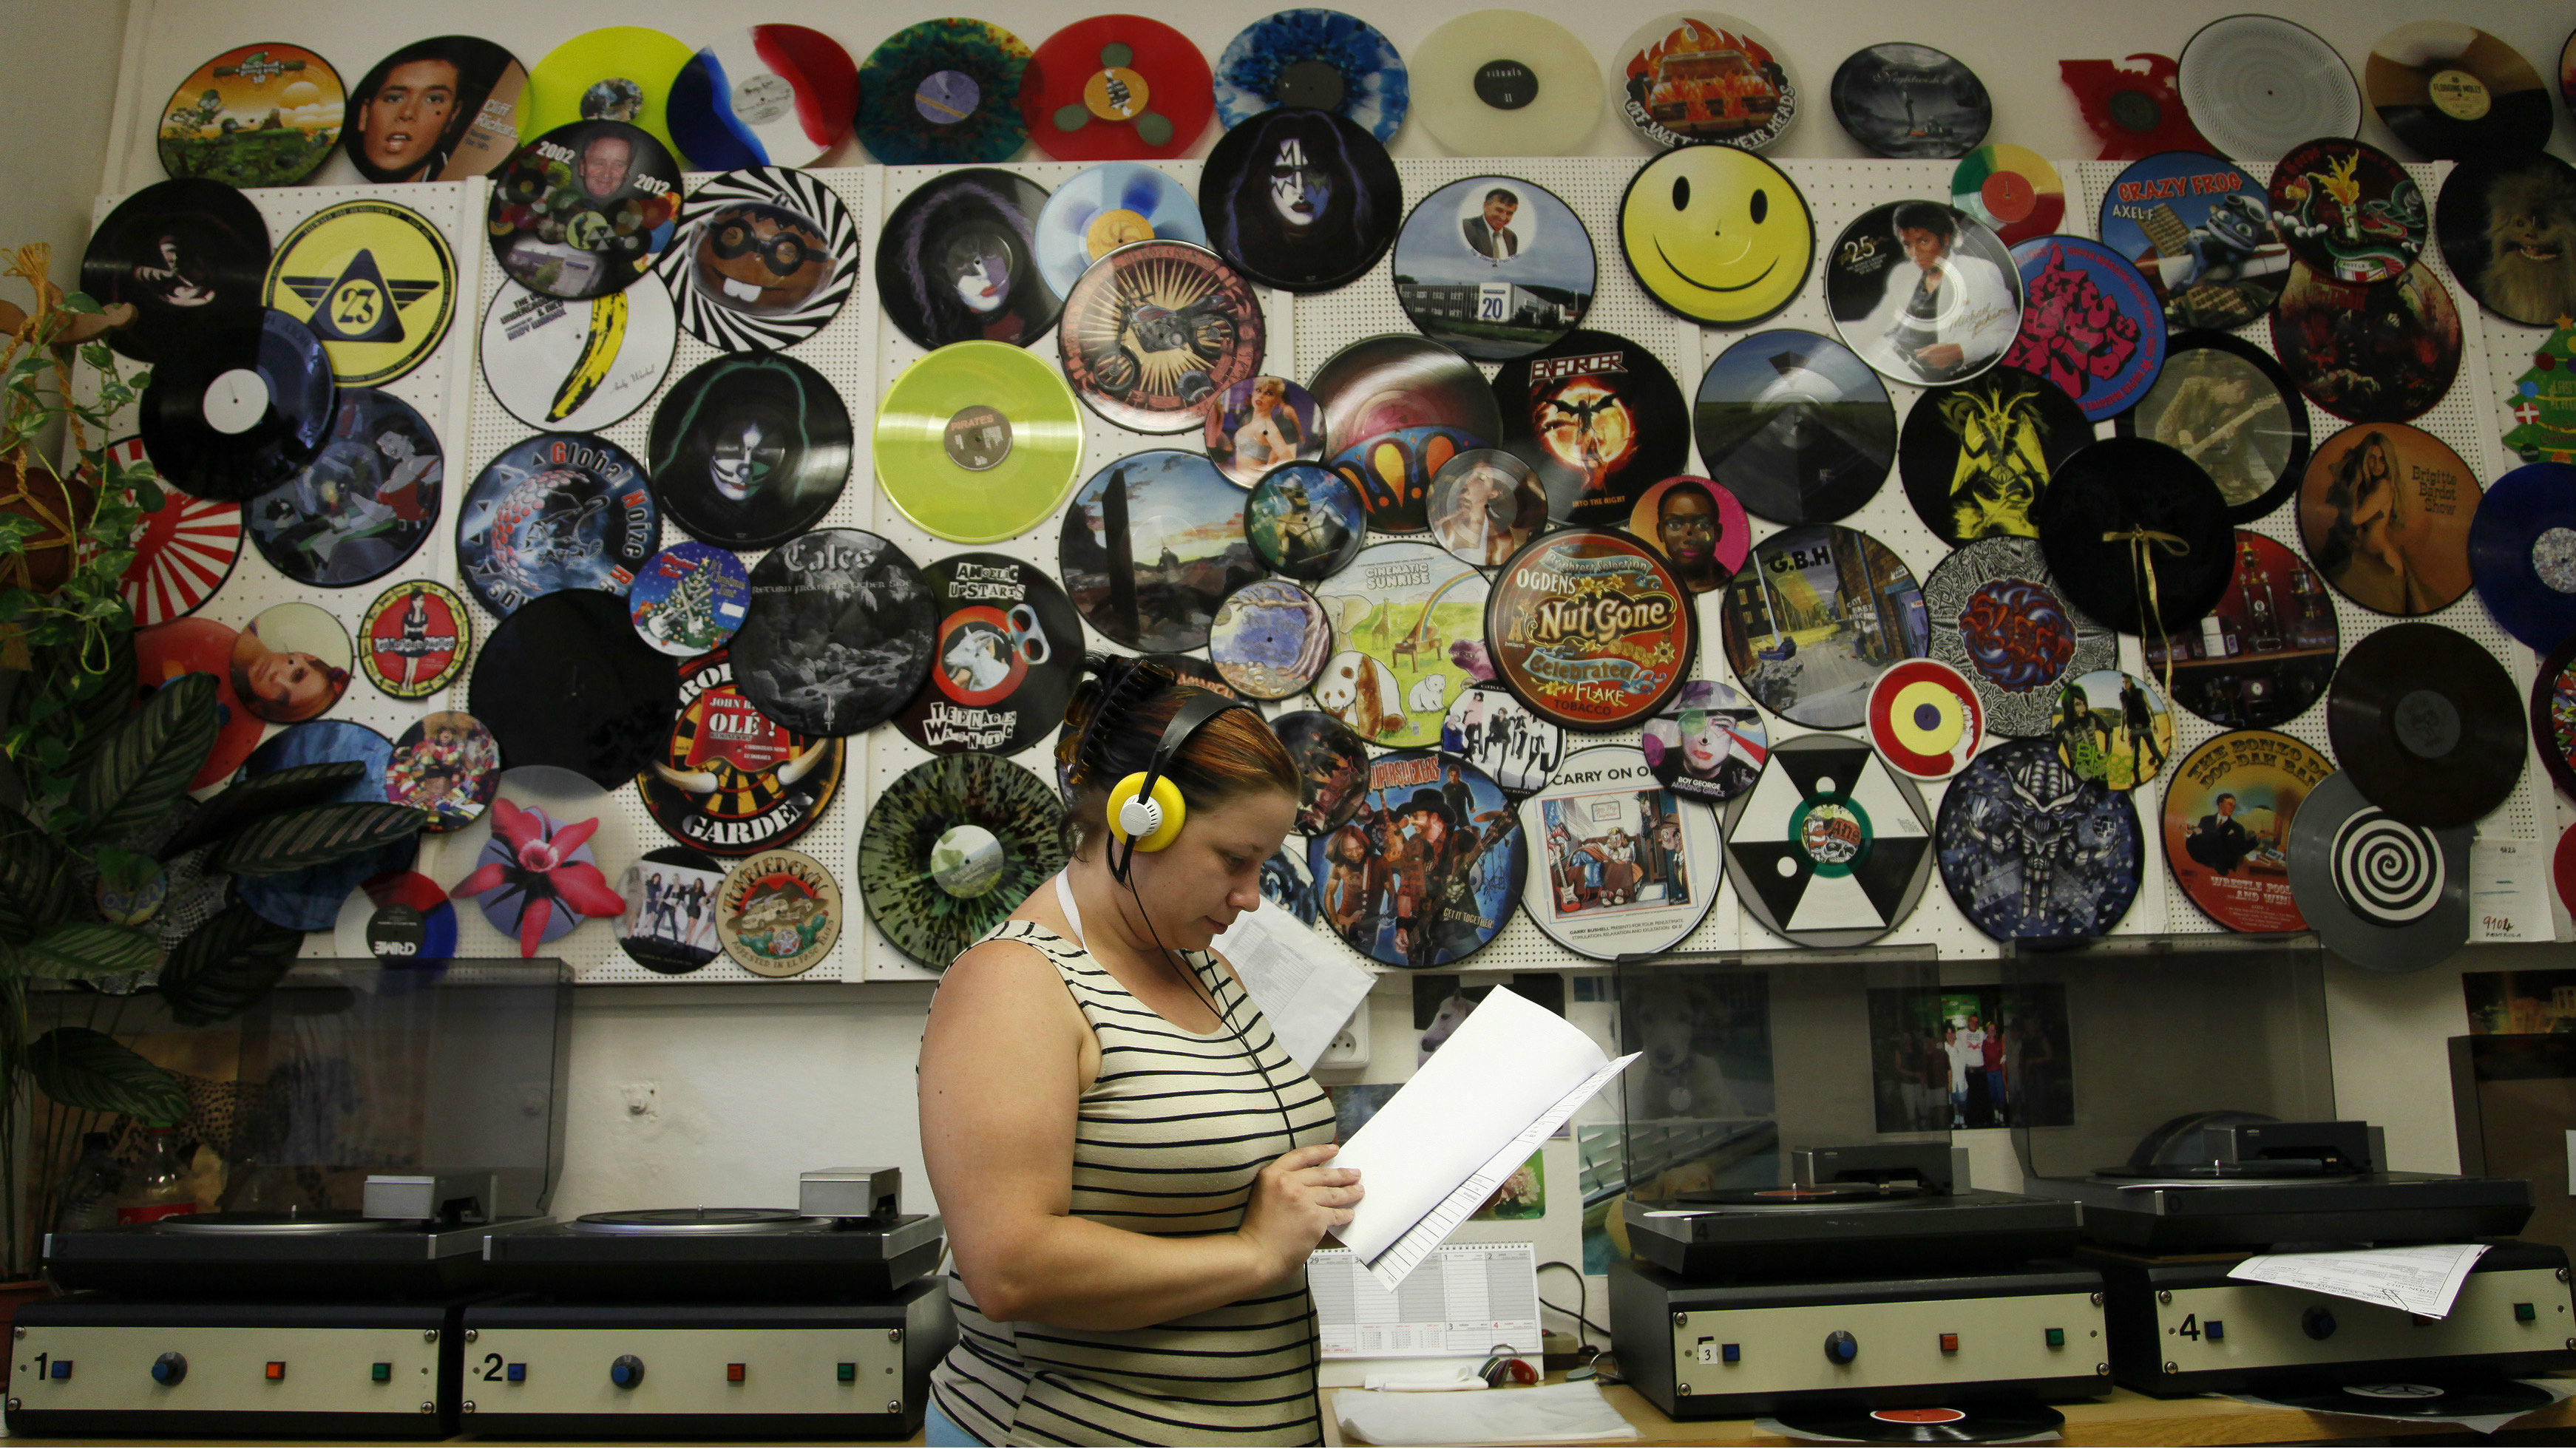 A woman listening to records in a record store.